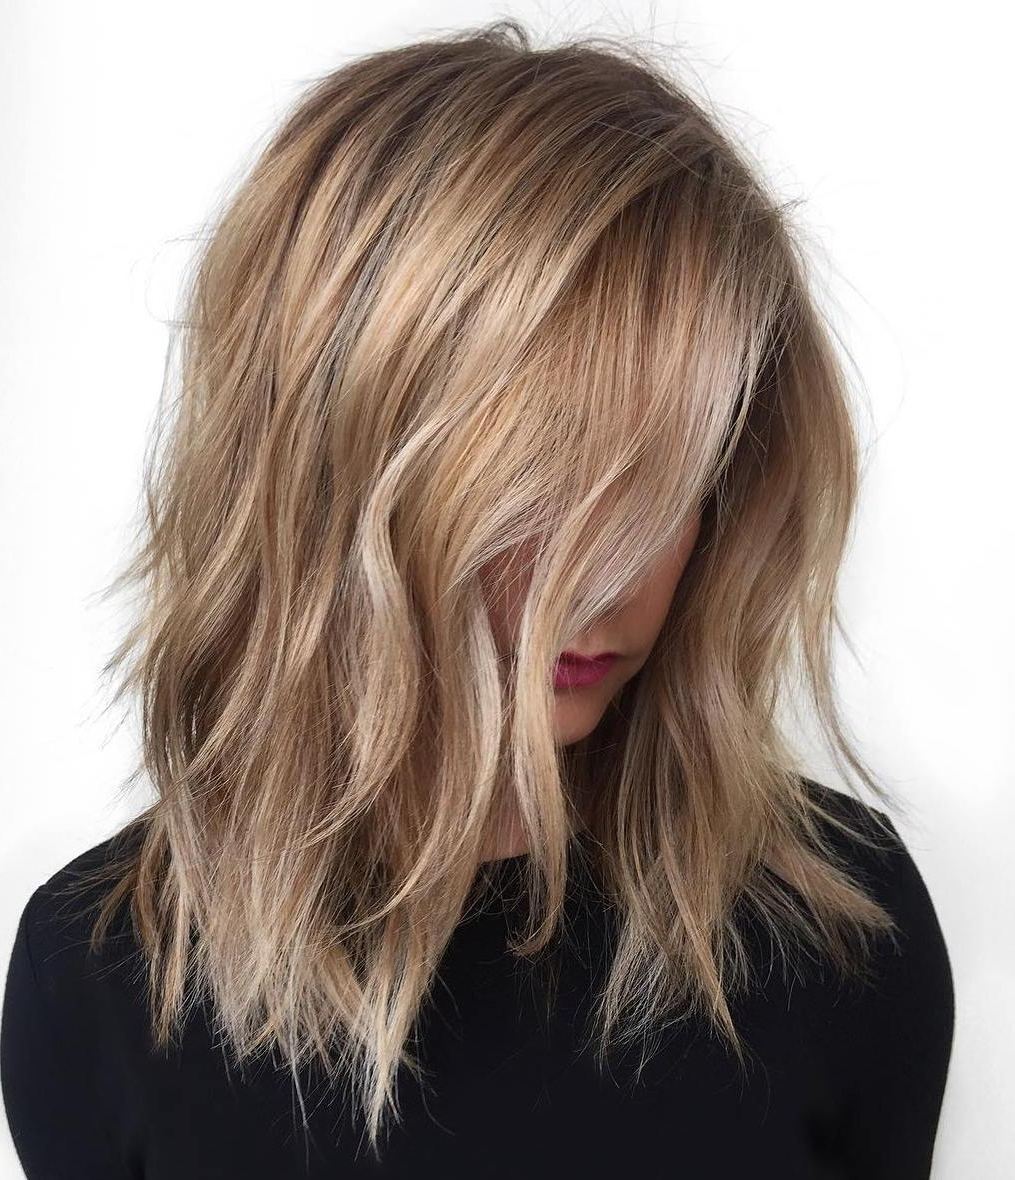 Blonde Hair Color Shades {Best Ideas For 2018} With Angelic Blonde Balayage Bob Hairstyles With Curls (View 19 of 25)